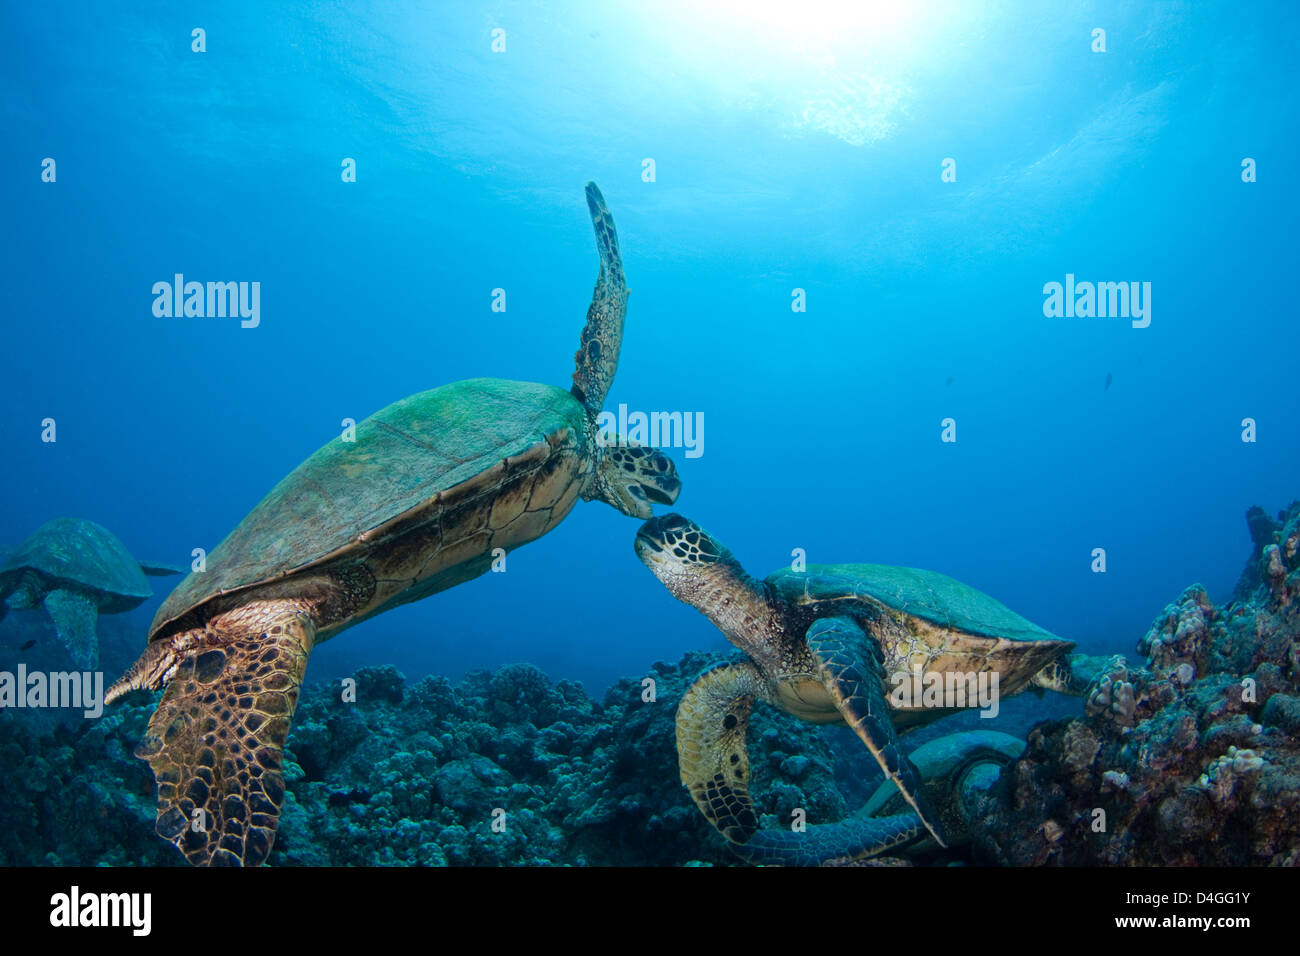 It appears that these two green sea turtles, Chelonia mydas, an endangered species, are having a disagreement Hawaii. - Stock Image